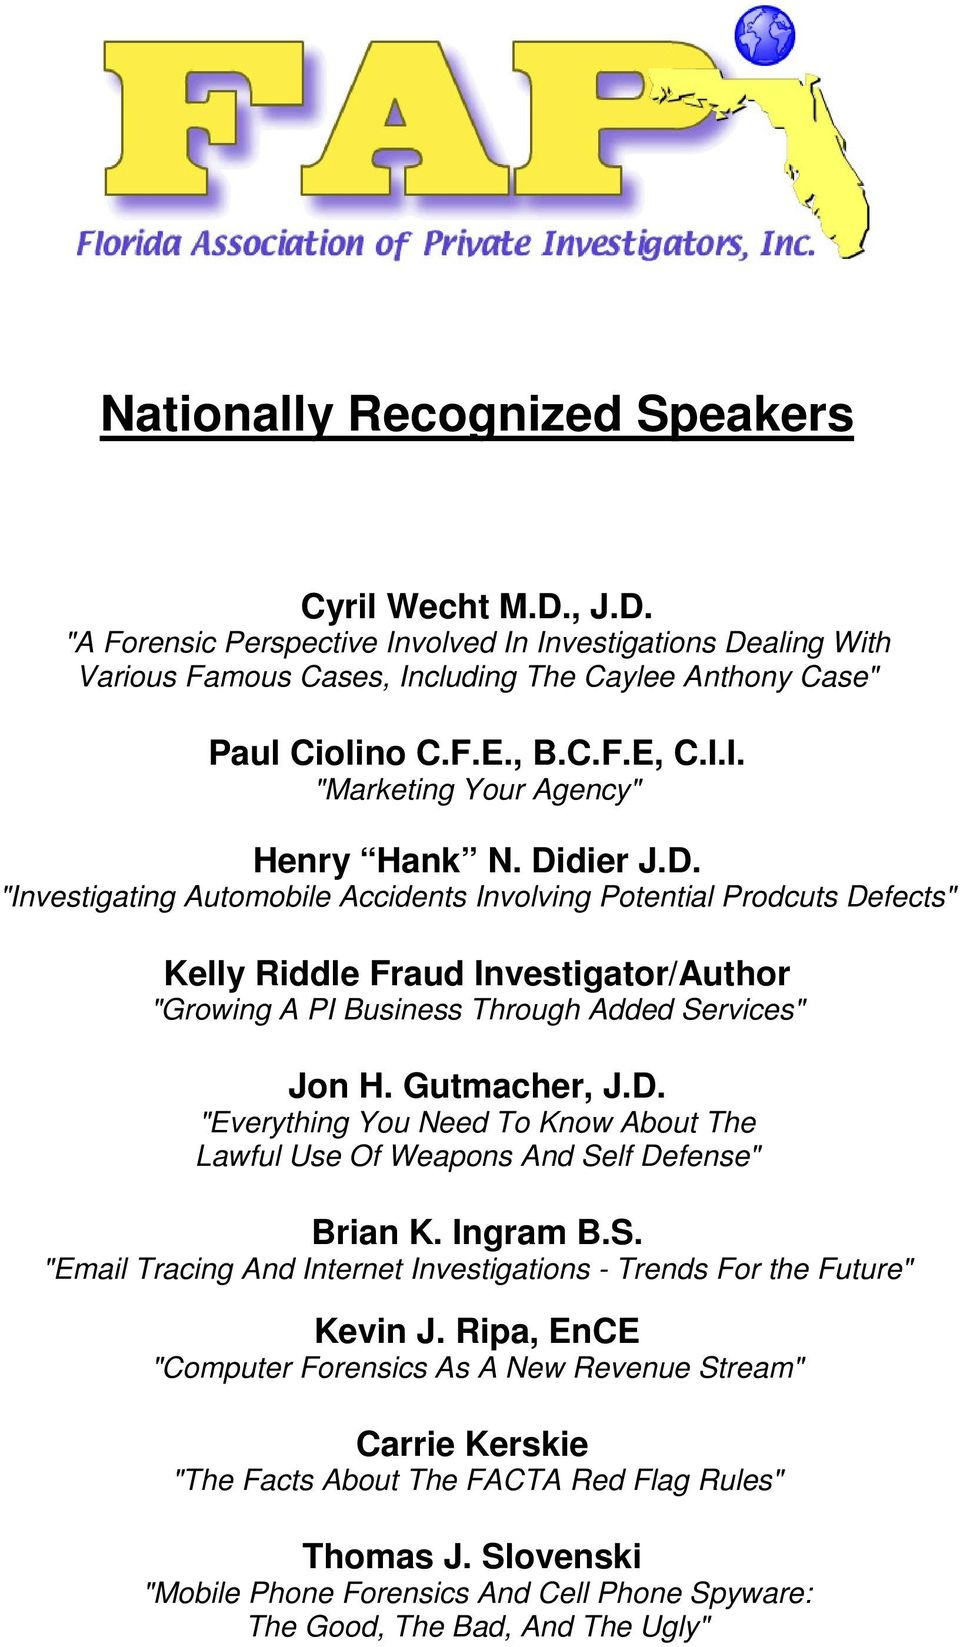 "dier J.D. ""Investigating Automobile Accidents Involving Potential Prodcuts Defects"" Kelly Riddle Fraud Investigator/Author ""Growing A PI Business Through Added Services"" Jon H. Gutmacher, J.D. ""Everything You Need To Know About The Lawful Use Of Weapons And Self Defense"" Brian K."